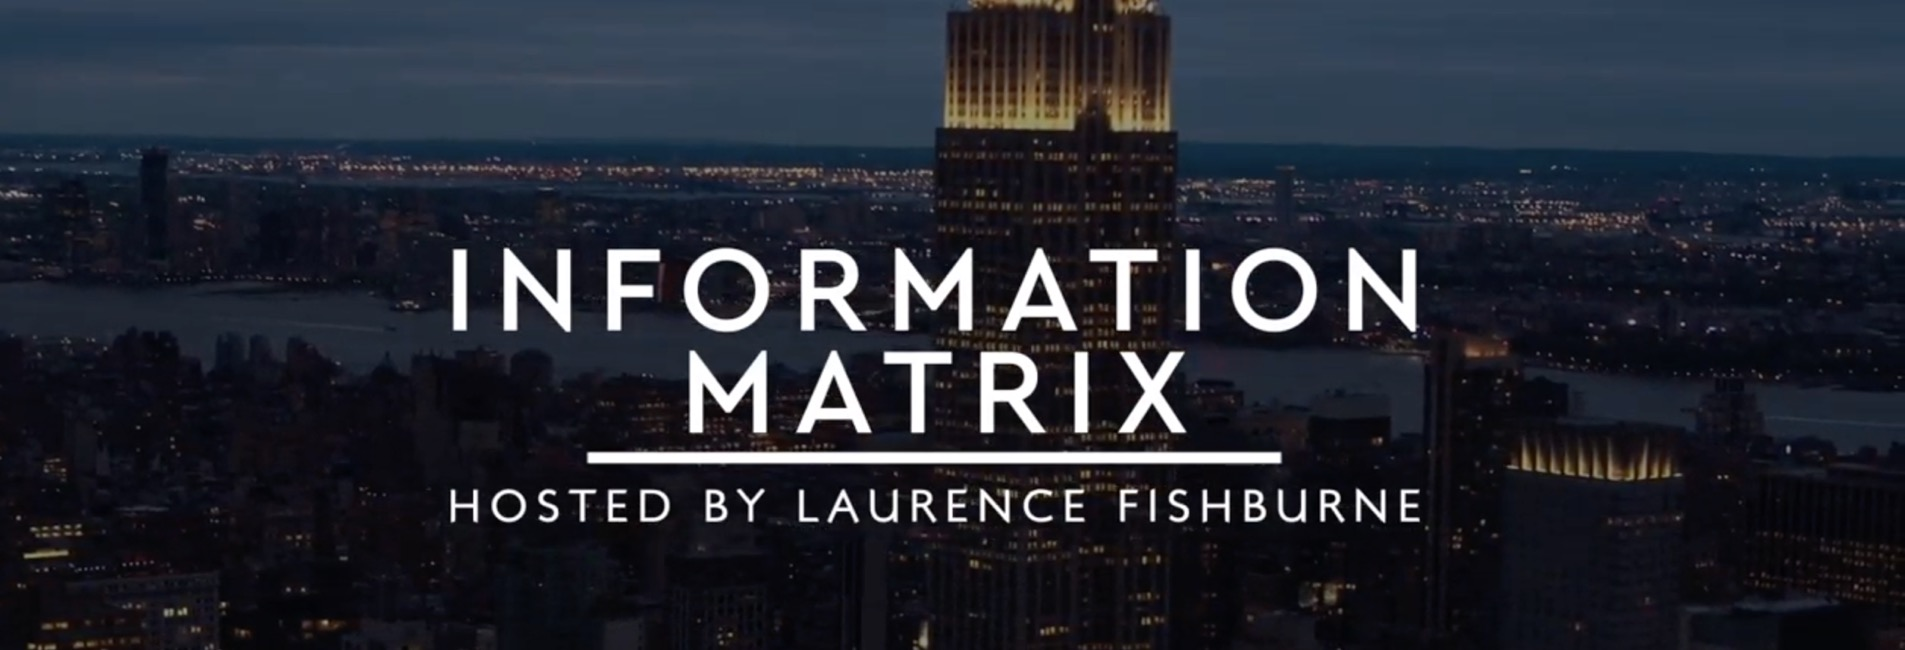 information matrix logo and host